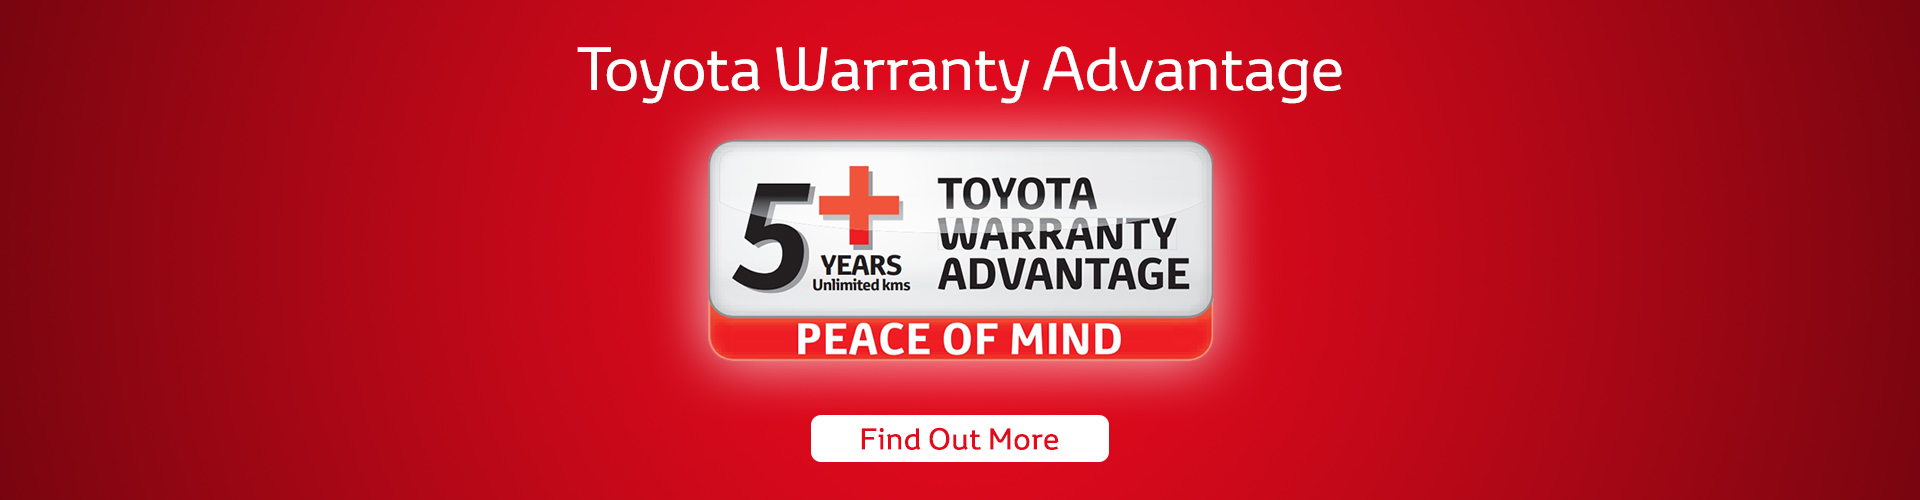 Toyota Warranty Advantage